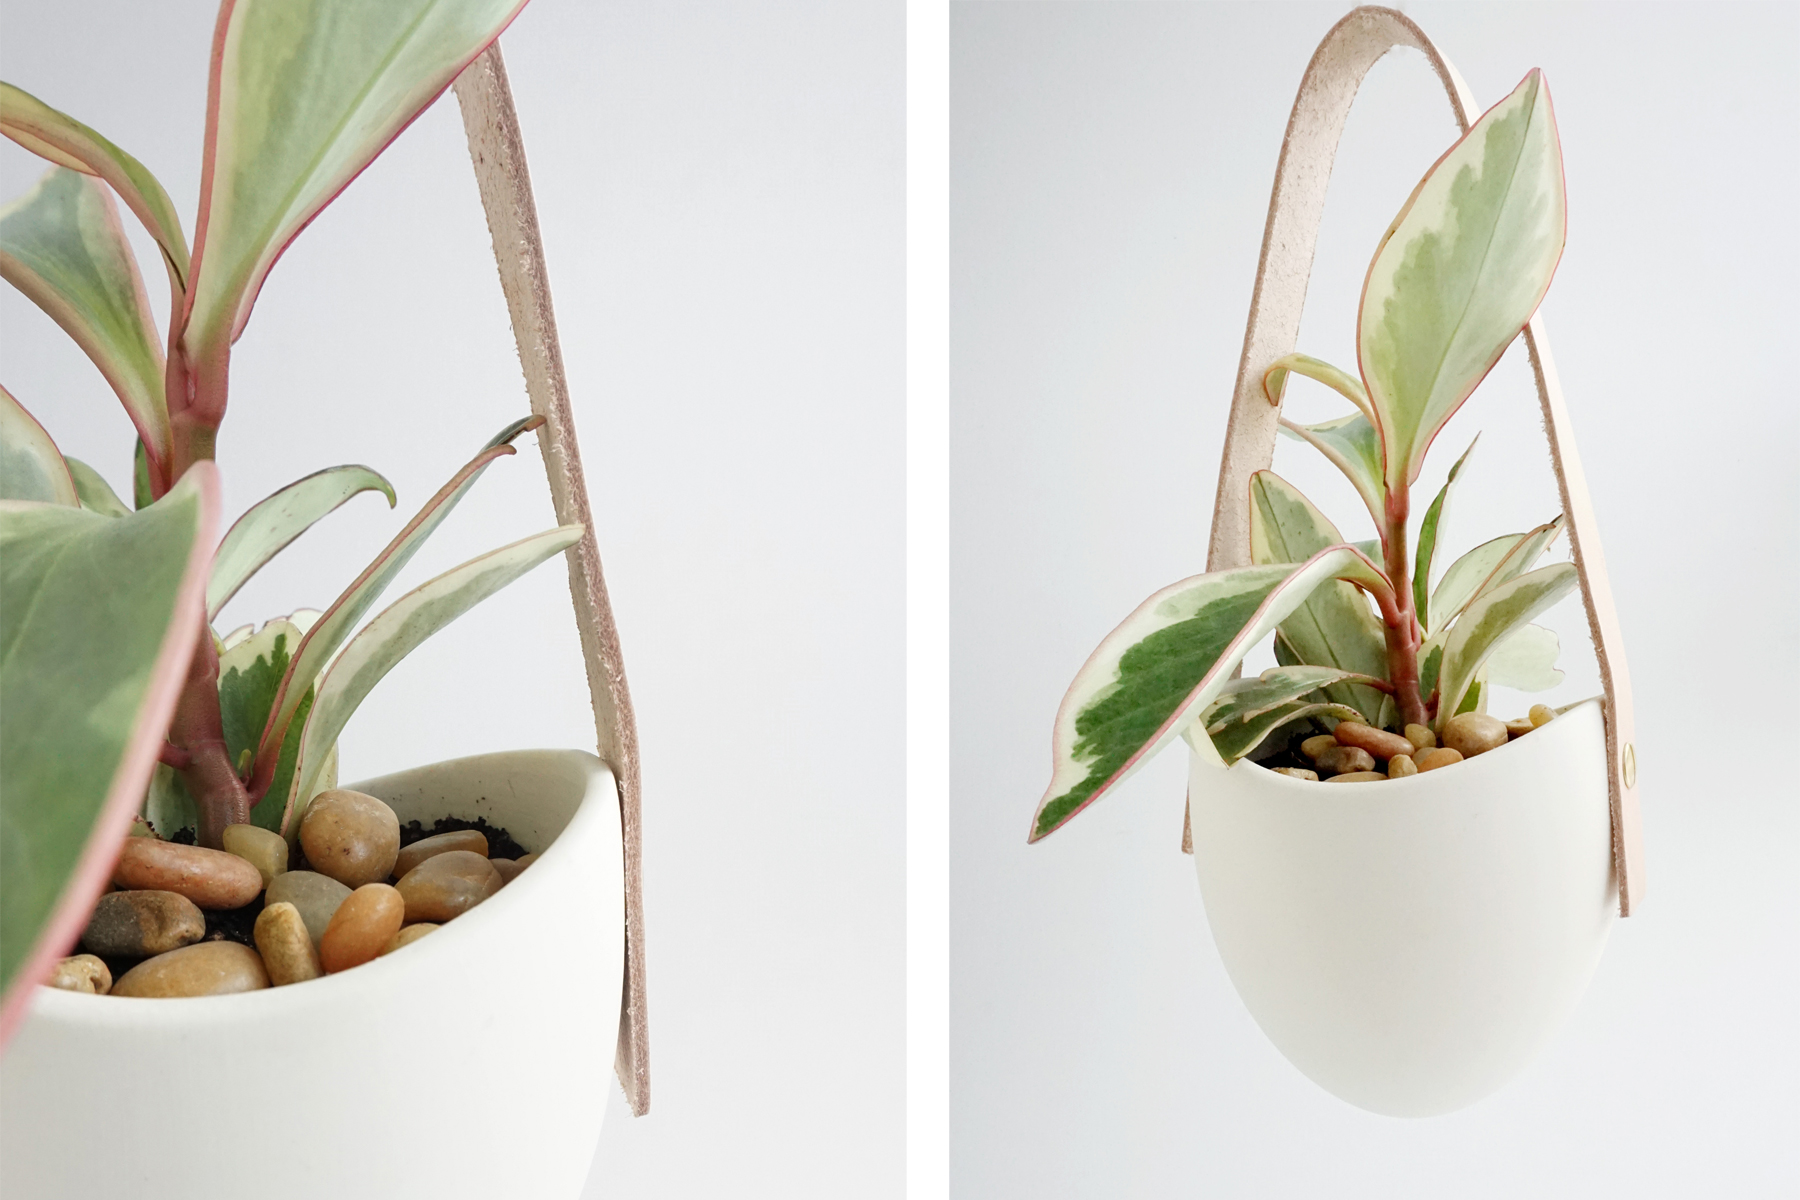 Put rocks on top to help with water flow and prevent water and dry soil from flowing over the top edge of the planter.